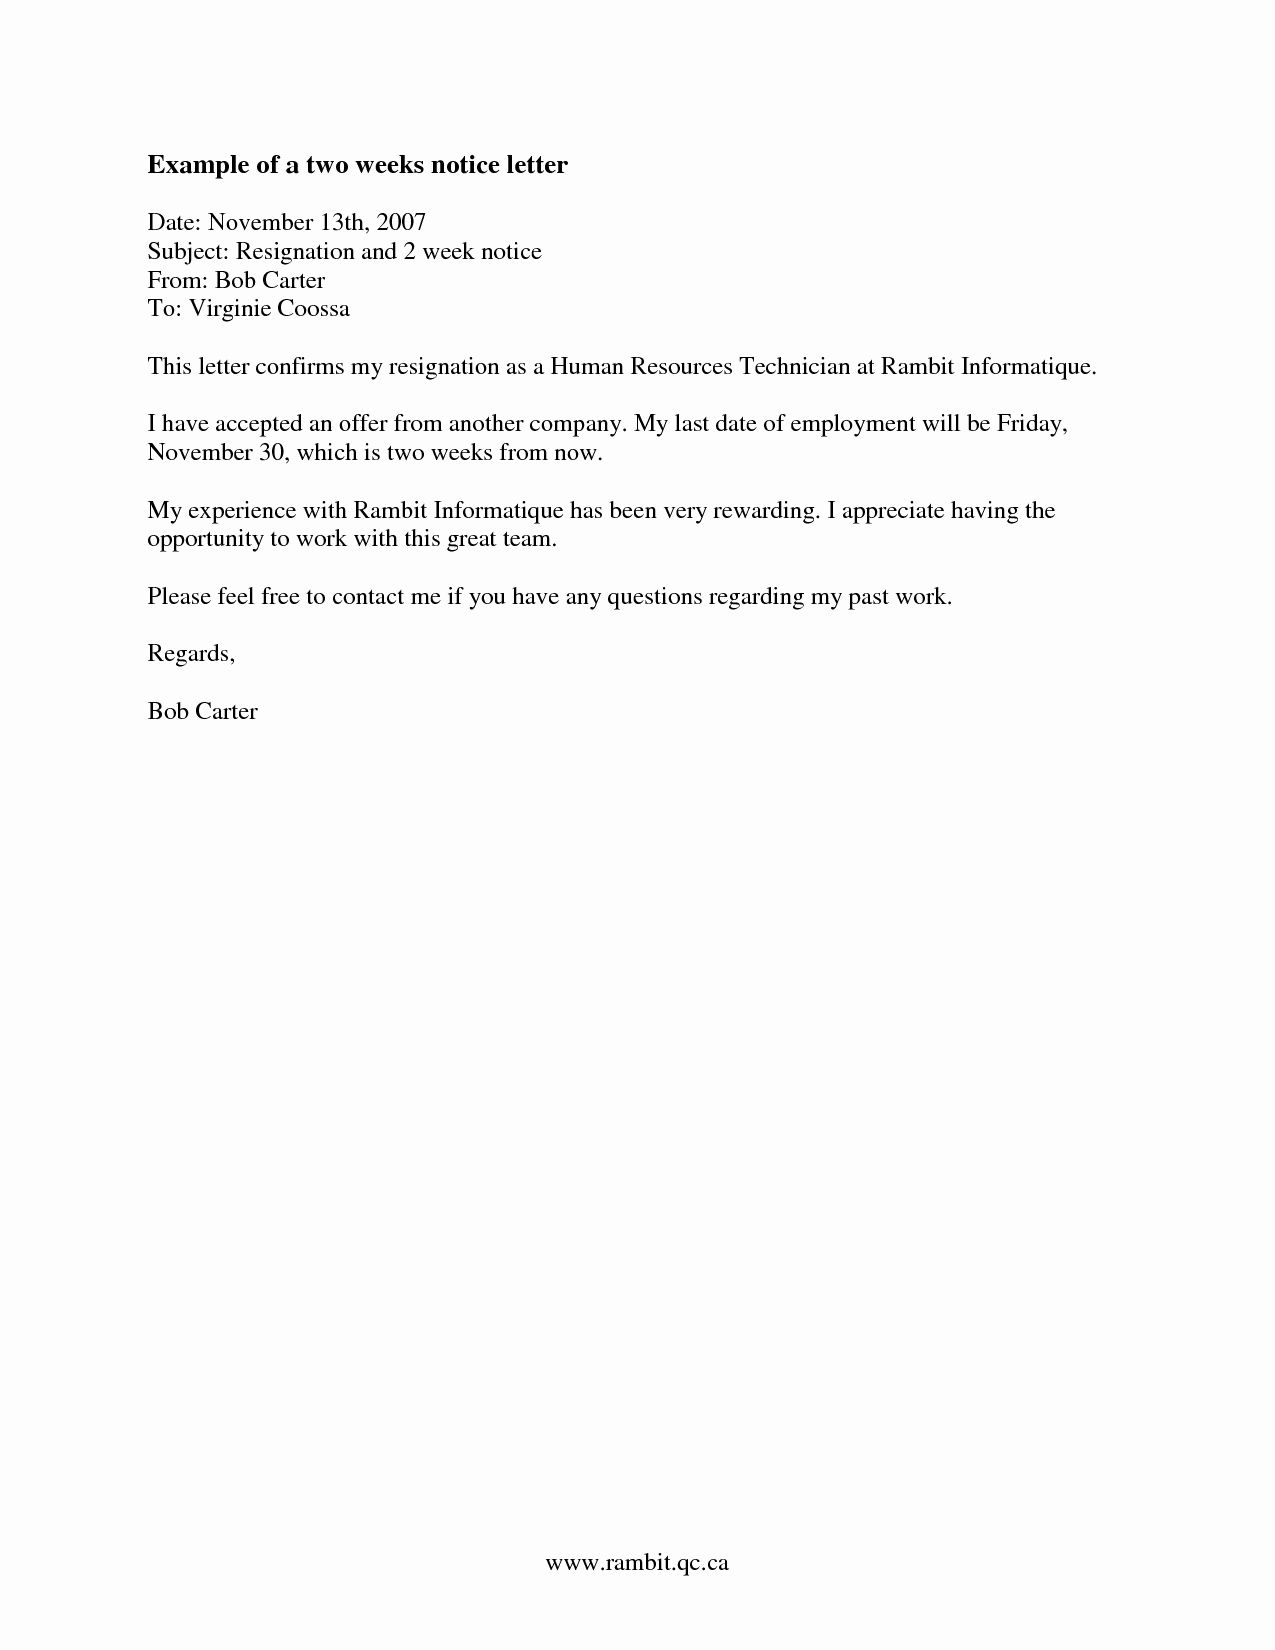 2 Weeks Notice Letter format Beautiful Two Weeks Notice